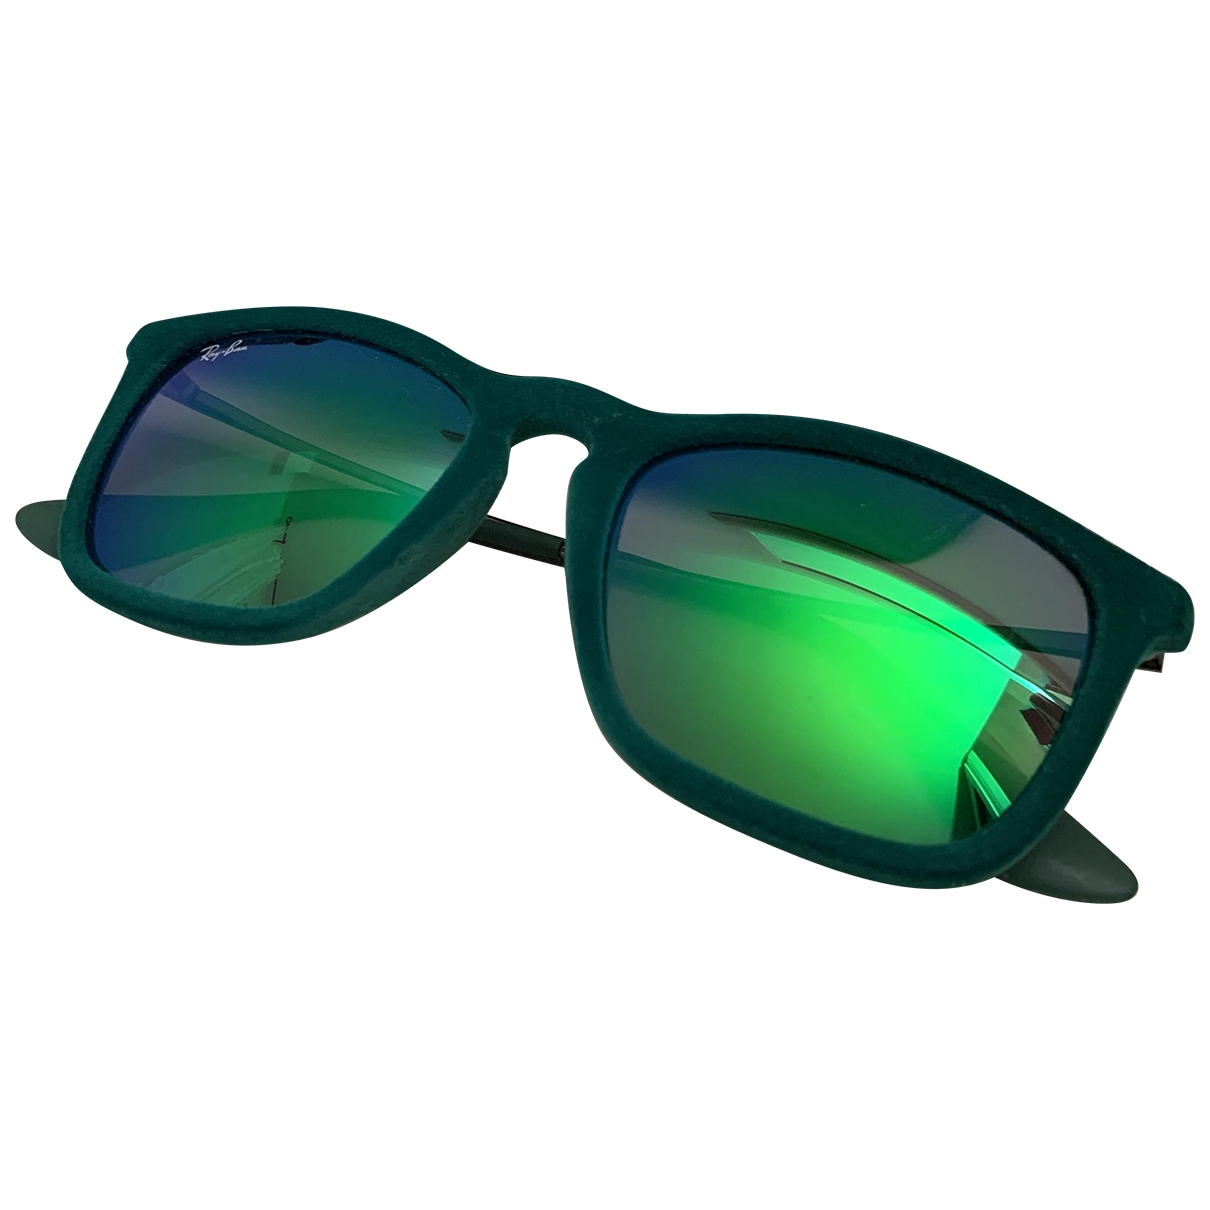 Ray-ban Original Wayfarer Green Metal Sunglasses for Men \N